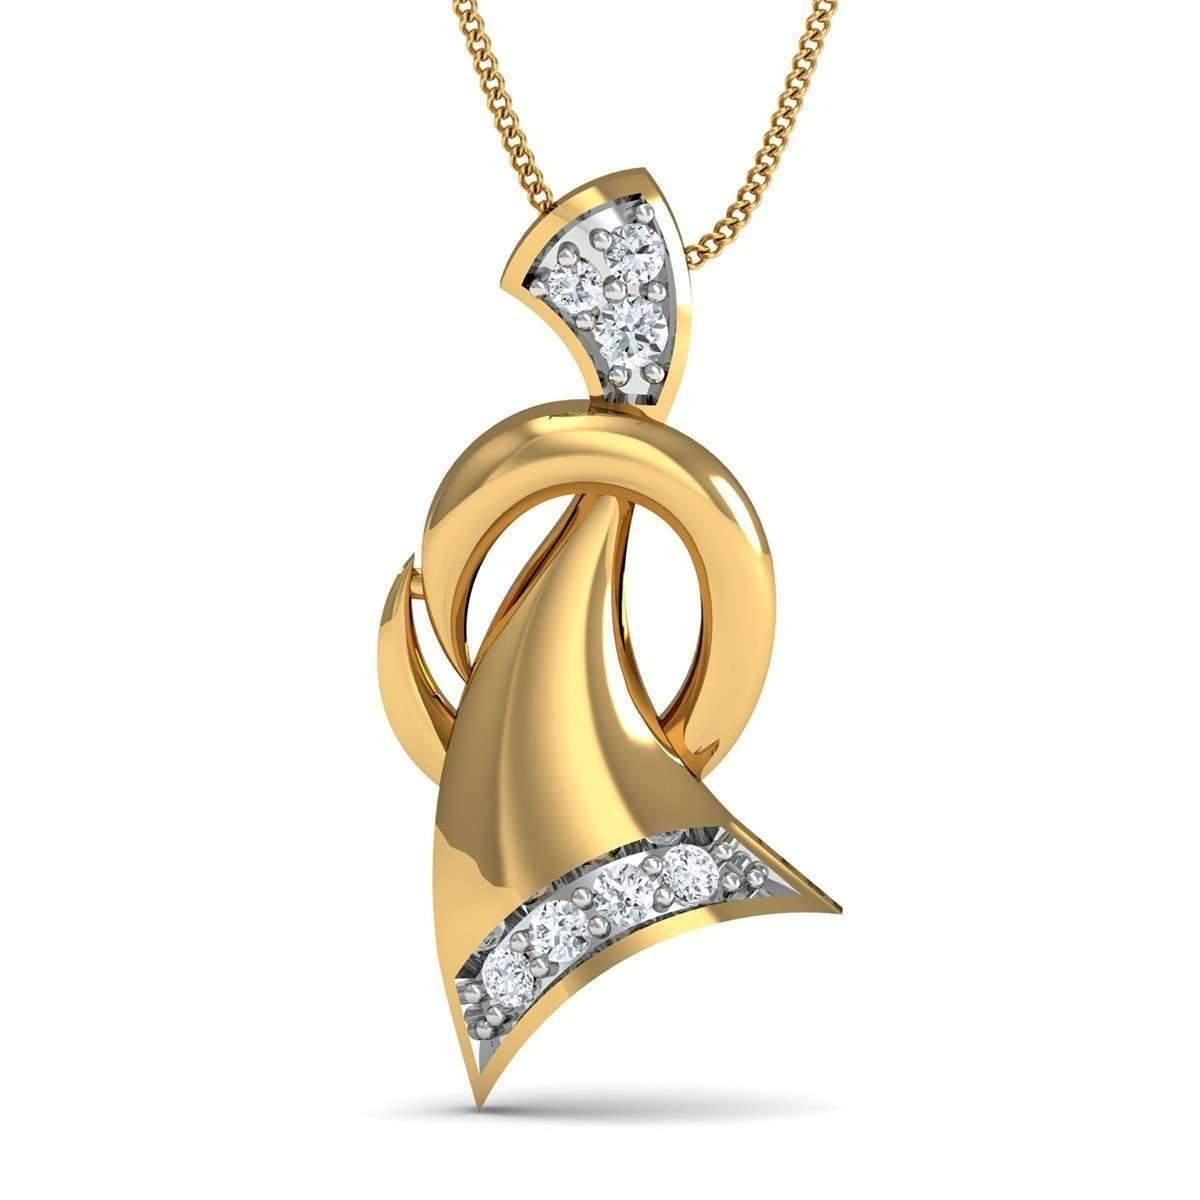 Diamoire Jewels 10kt Yellow Gold and 7 Round Cut Diamond Pave Pendant Inspired By Nature wInClrYD64